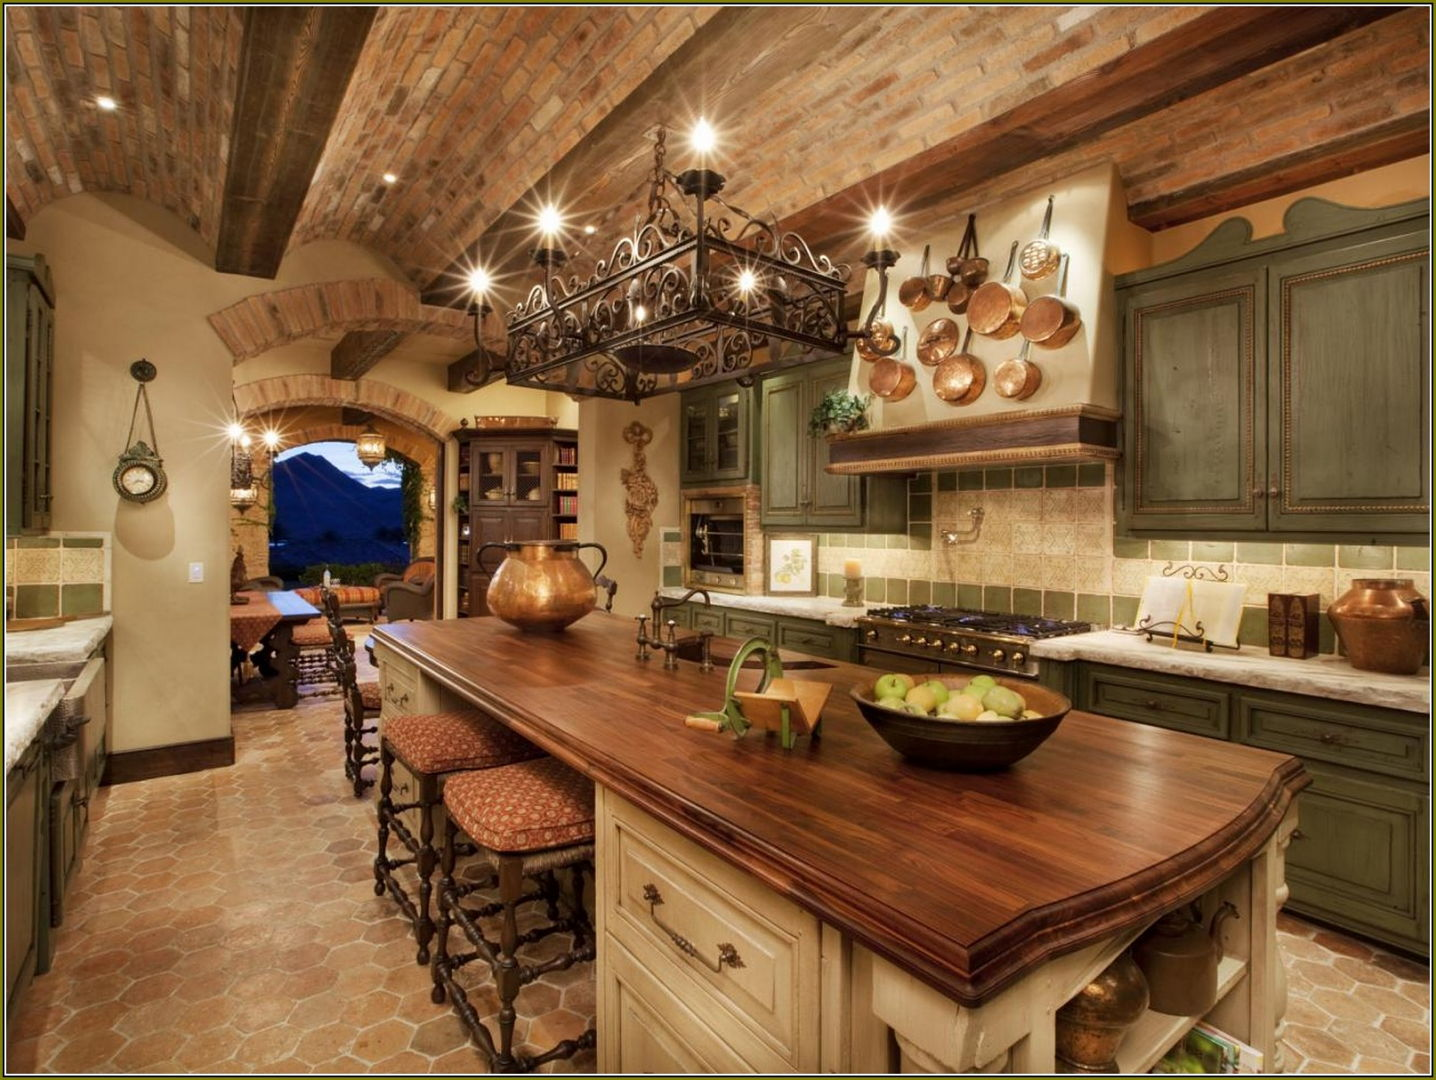 Weizter Magazine | Weizter Kitchens on traditional italian kitchen, lattice on ceiling kitchen, italian country kitchen, house decorations for kitchen, decorating on top shelf in kitchen,